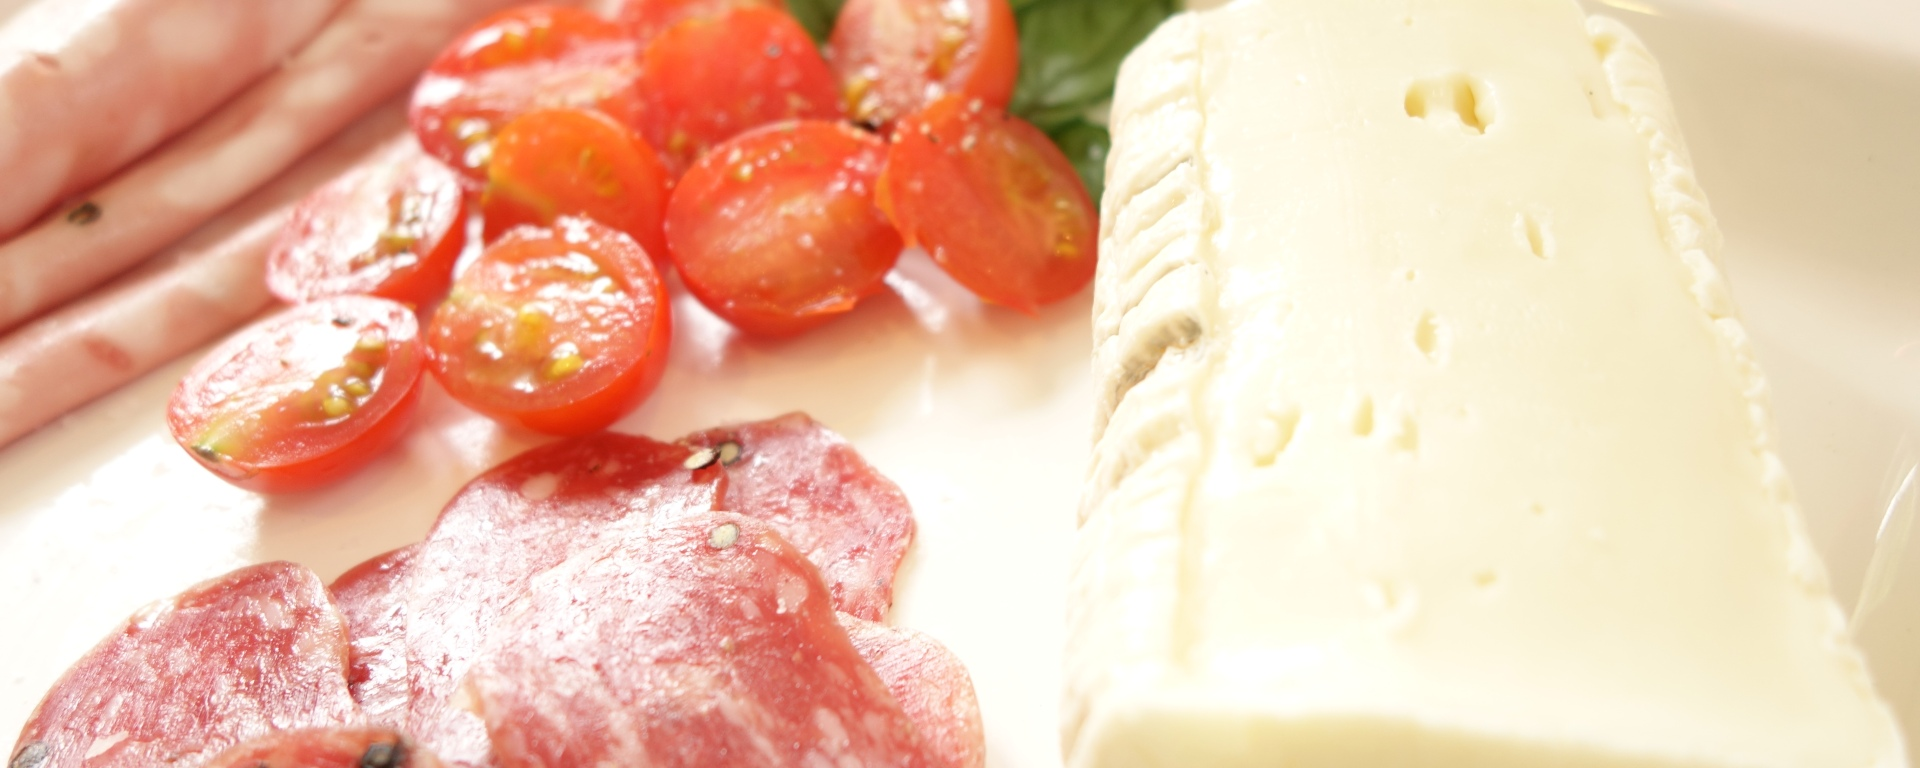 Taleggio, Mortadella, Arbuzzo salami and sunny cherry tomatoes.